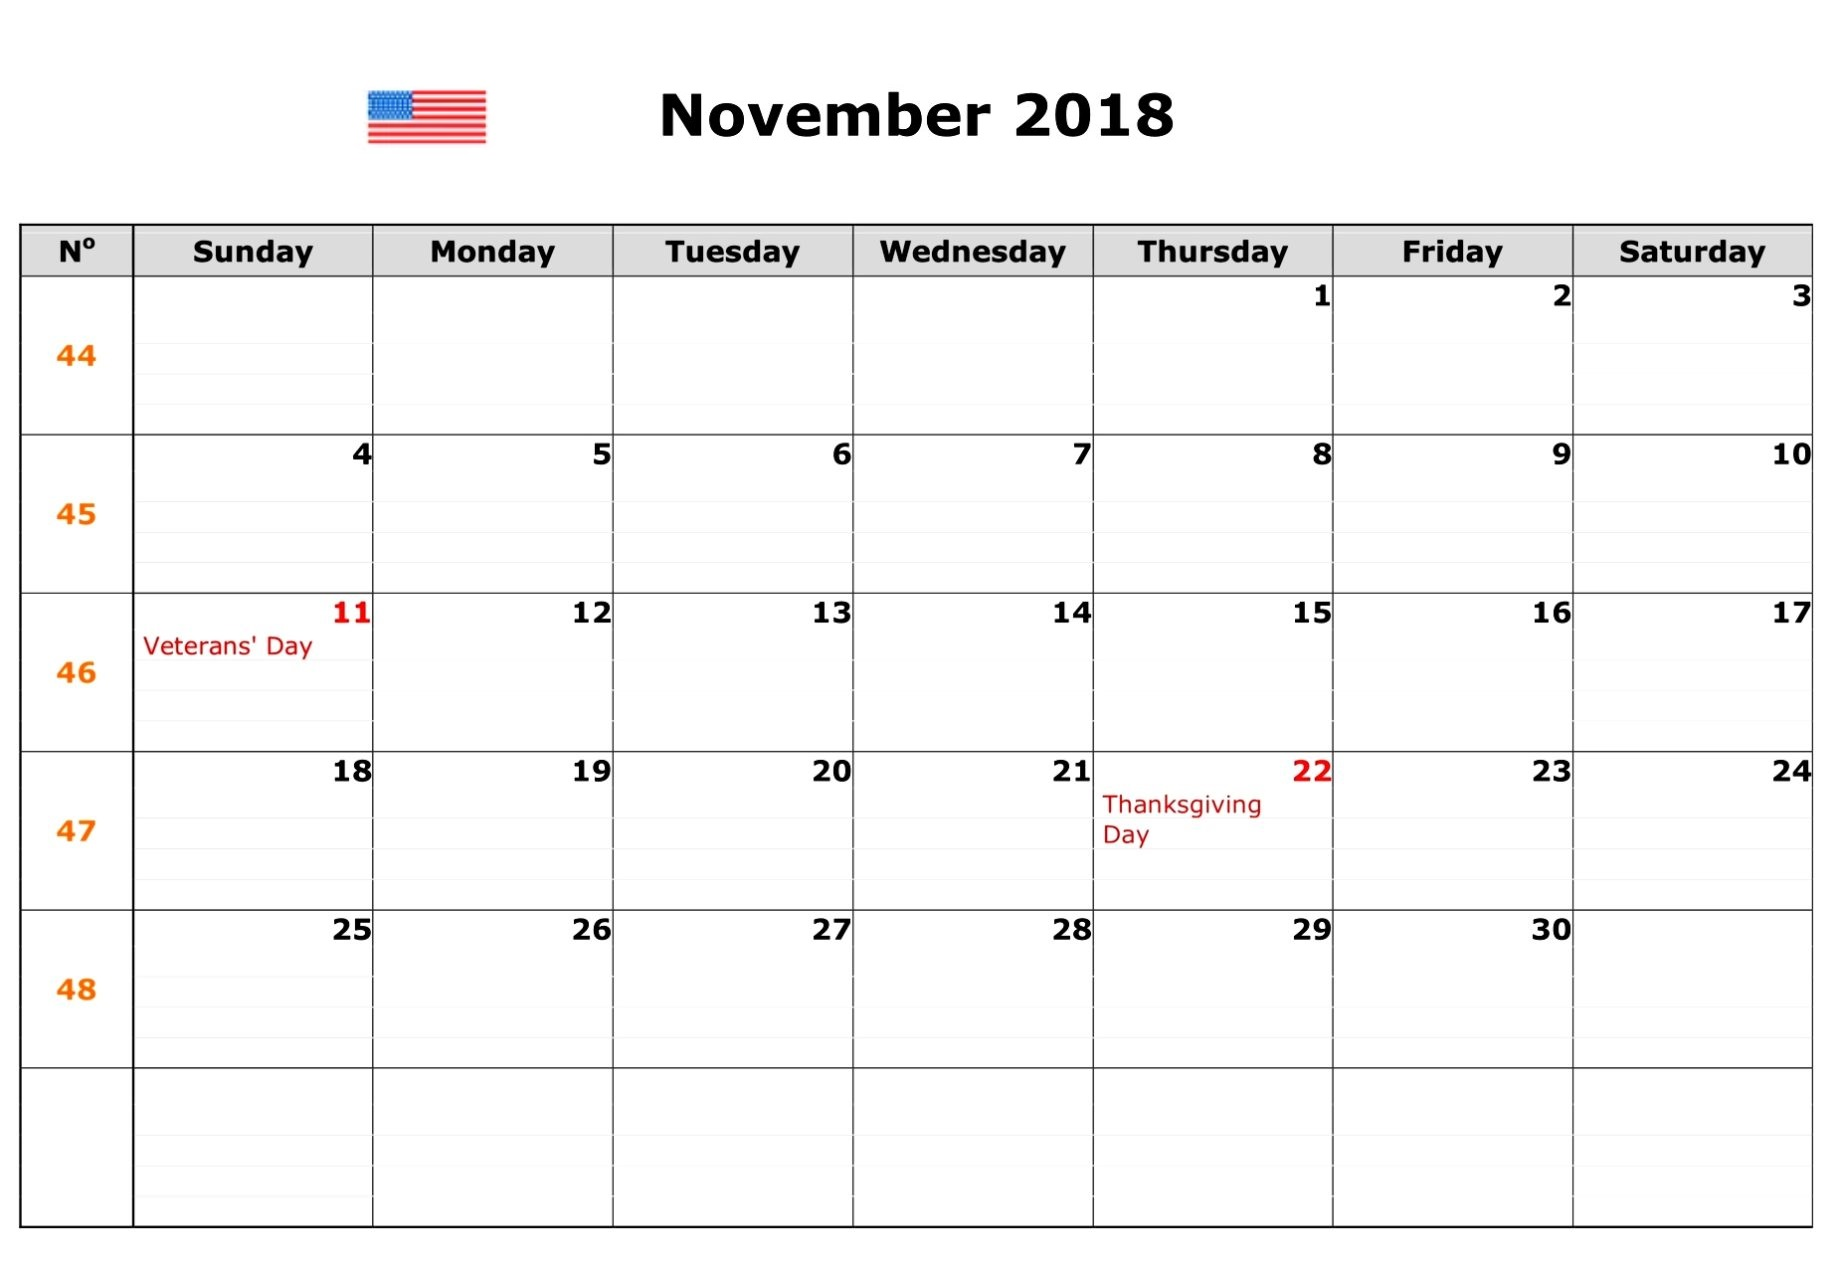 November 2018 Calendar With Holidays USA